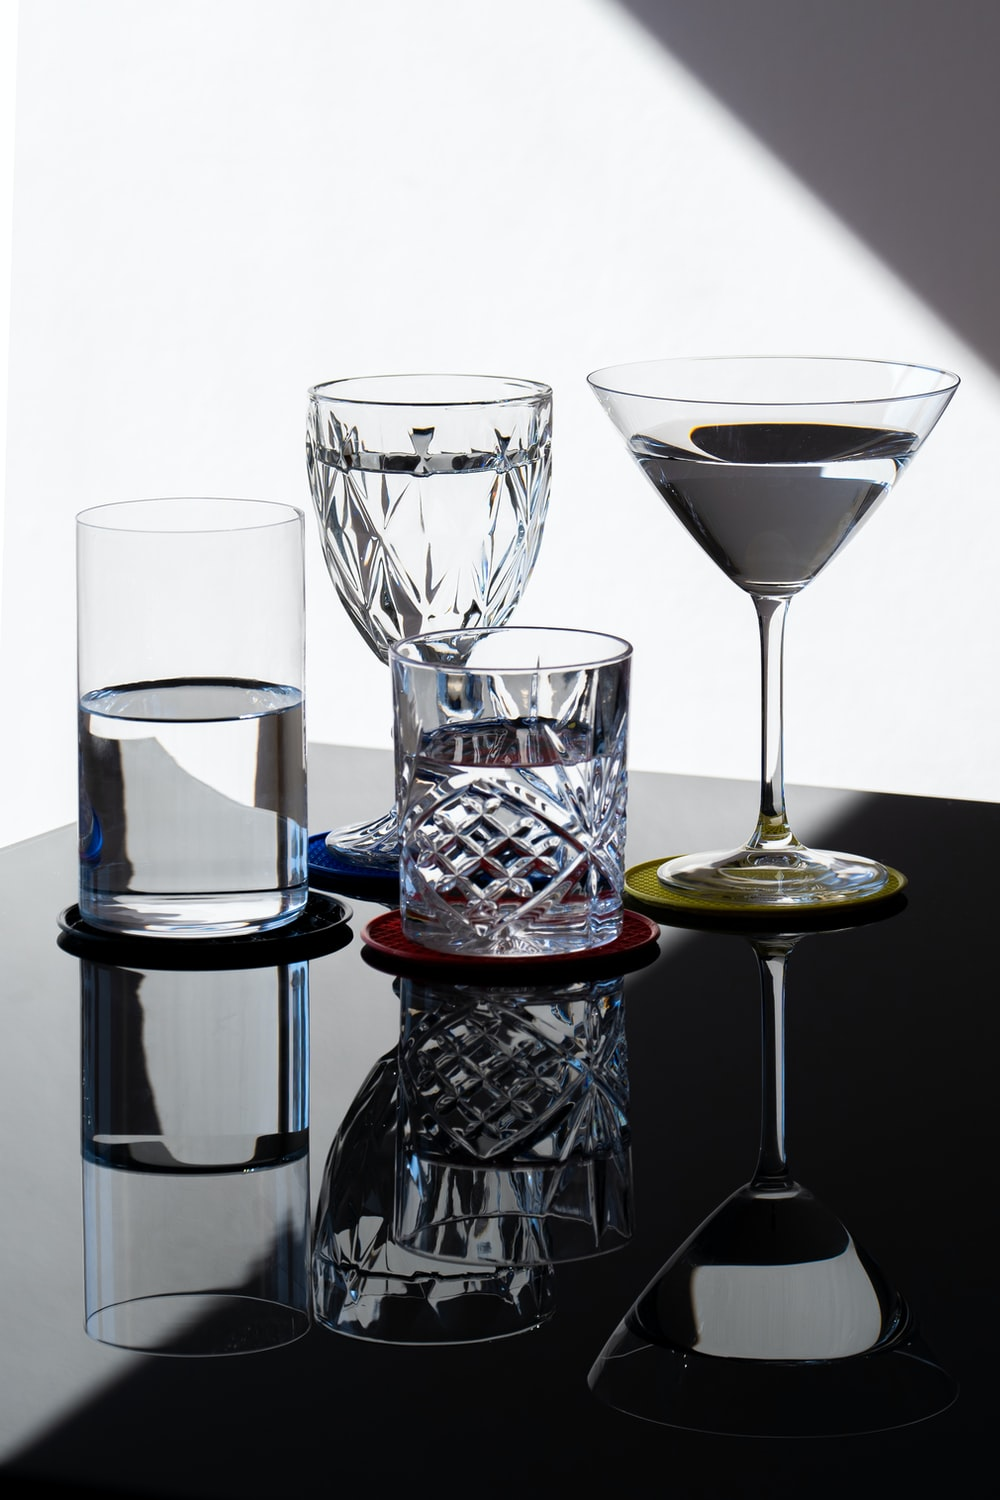 clear wine glass beside clear drinking glass